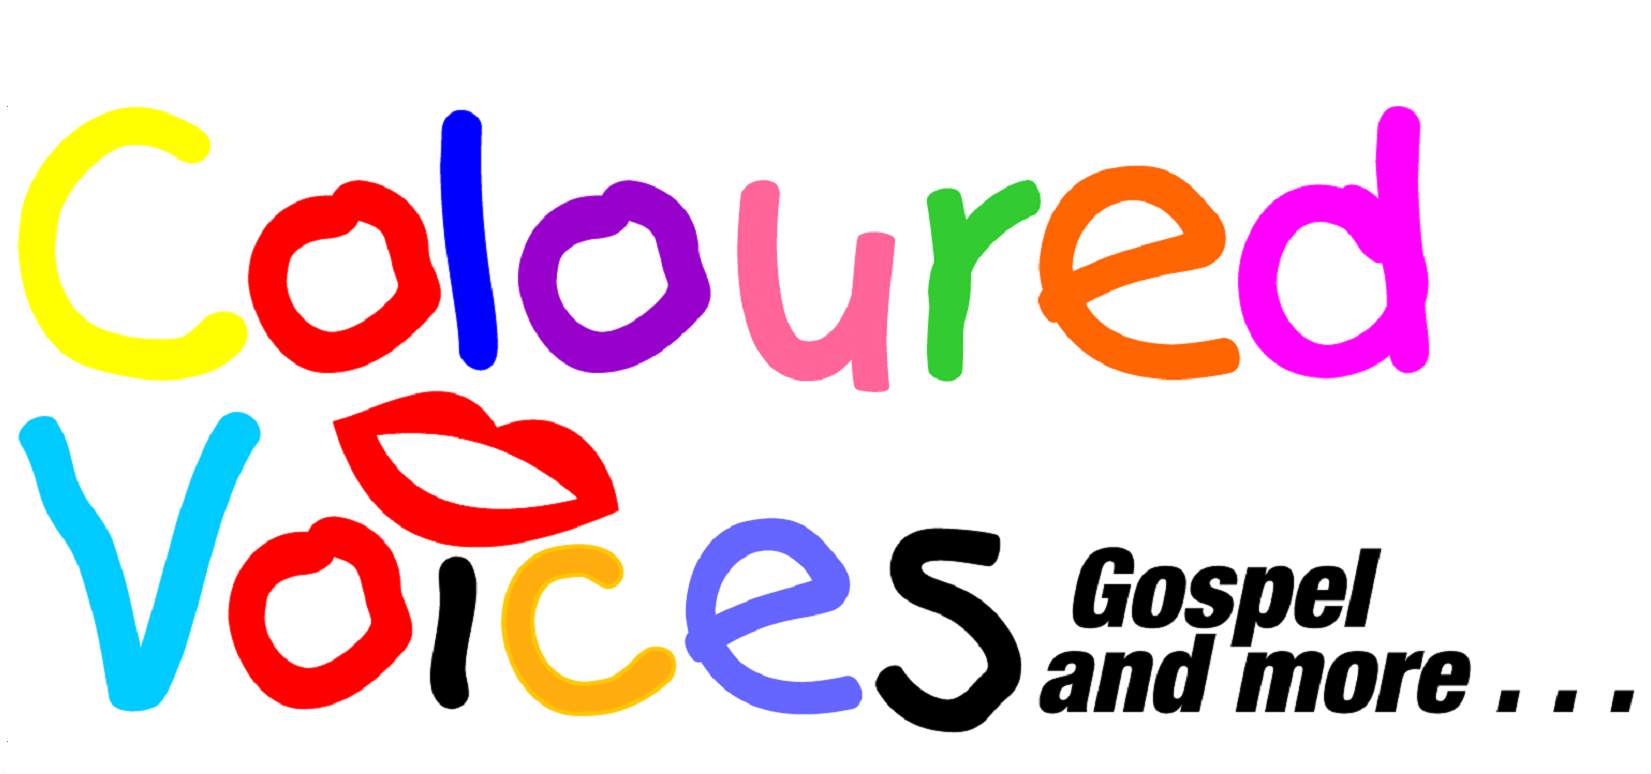 coloured_voices.png